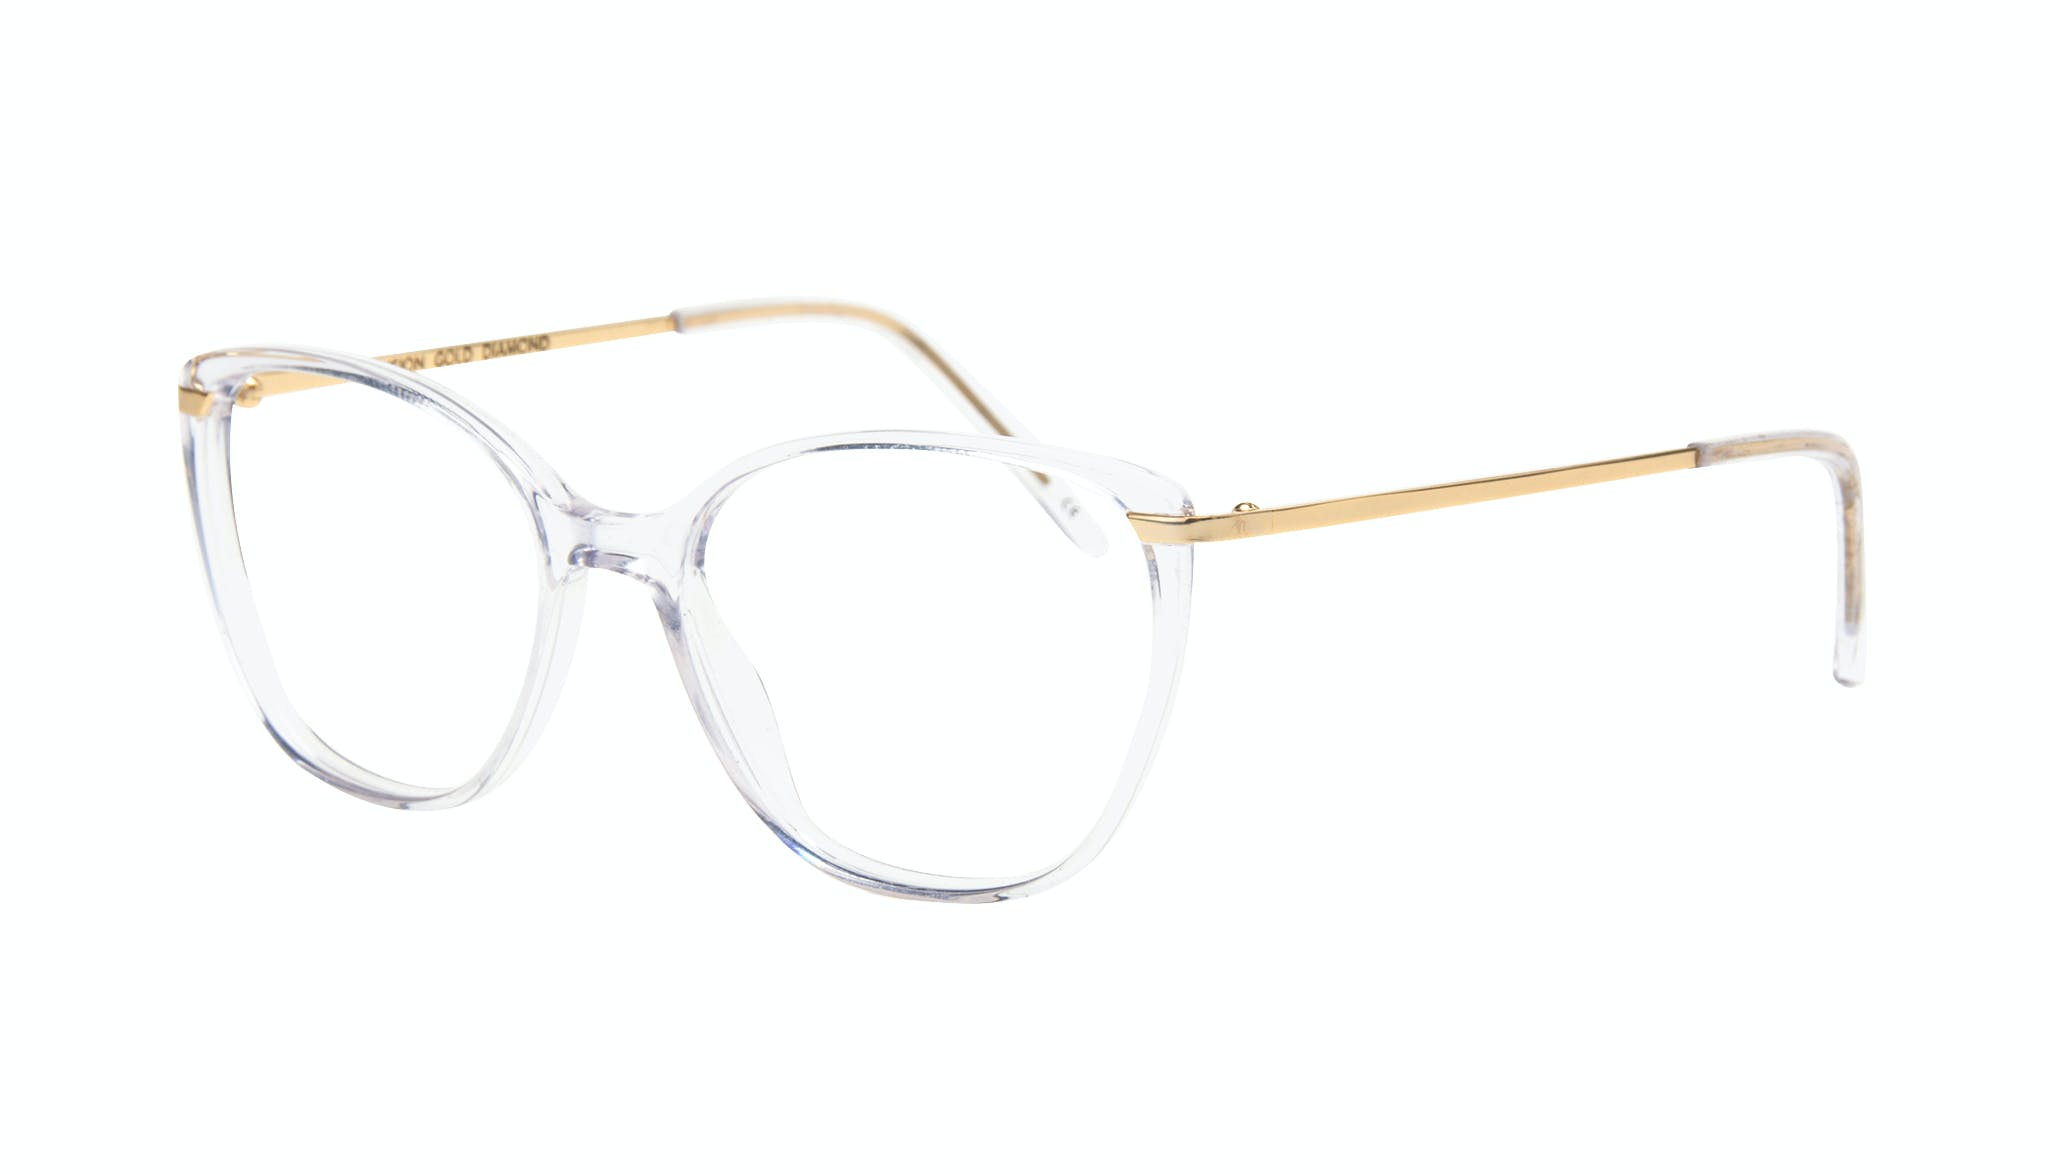 Affordable Fashion Glasses Cat Eye Rectangle Square Eyeglasses Women Illusion Gold Diamond Tilt